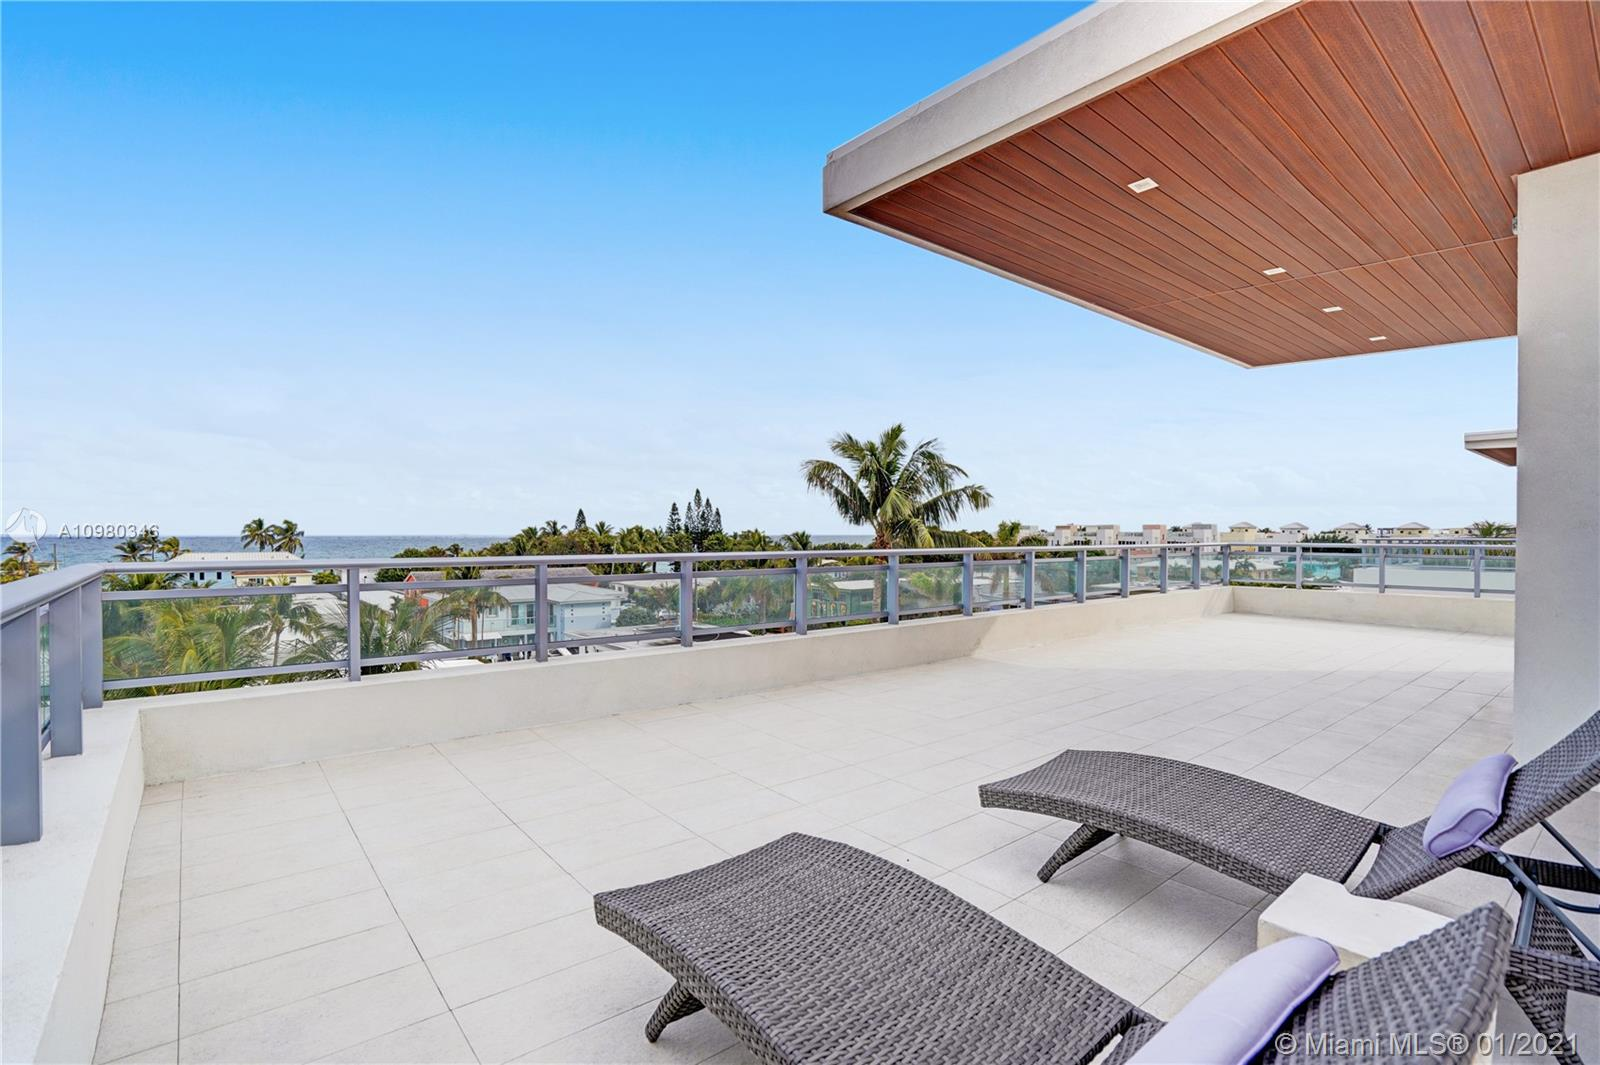 Rooftop deck with a view of the Ocean.